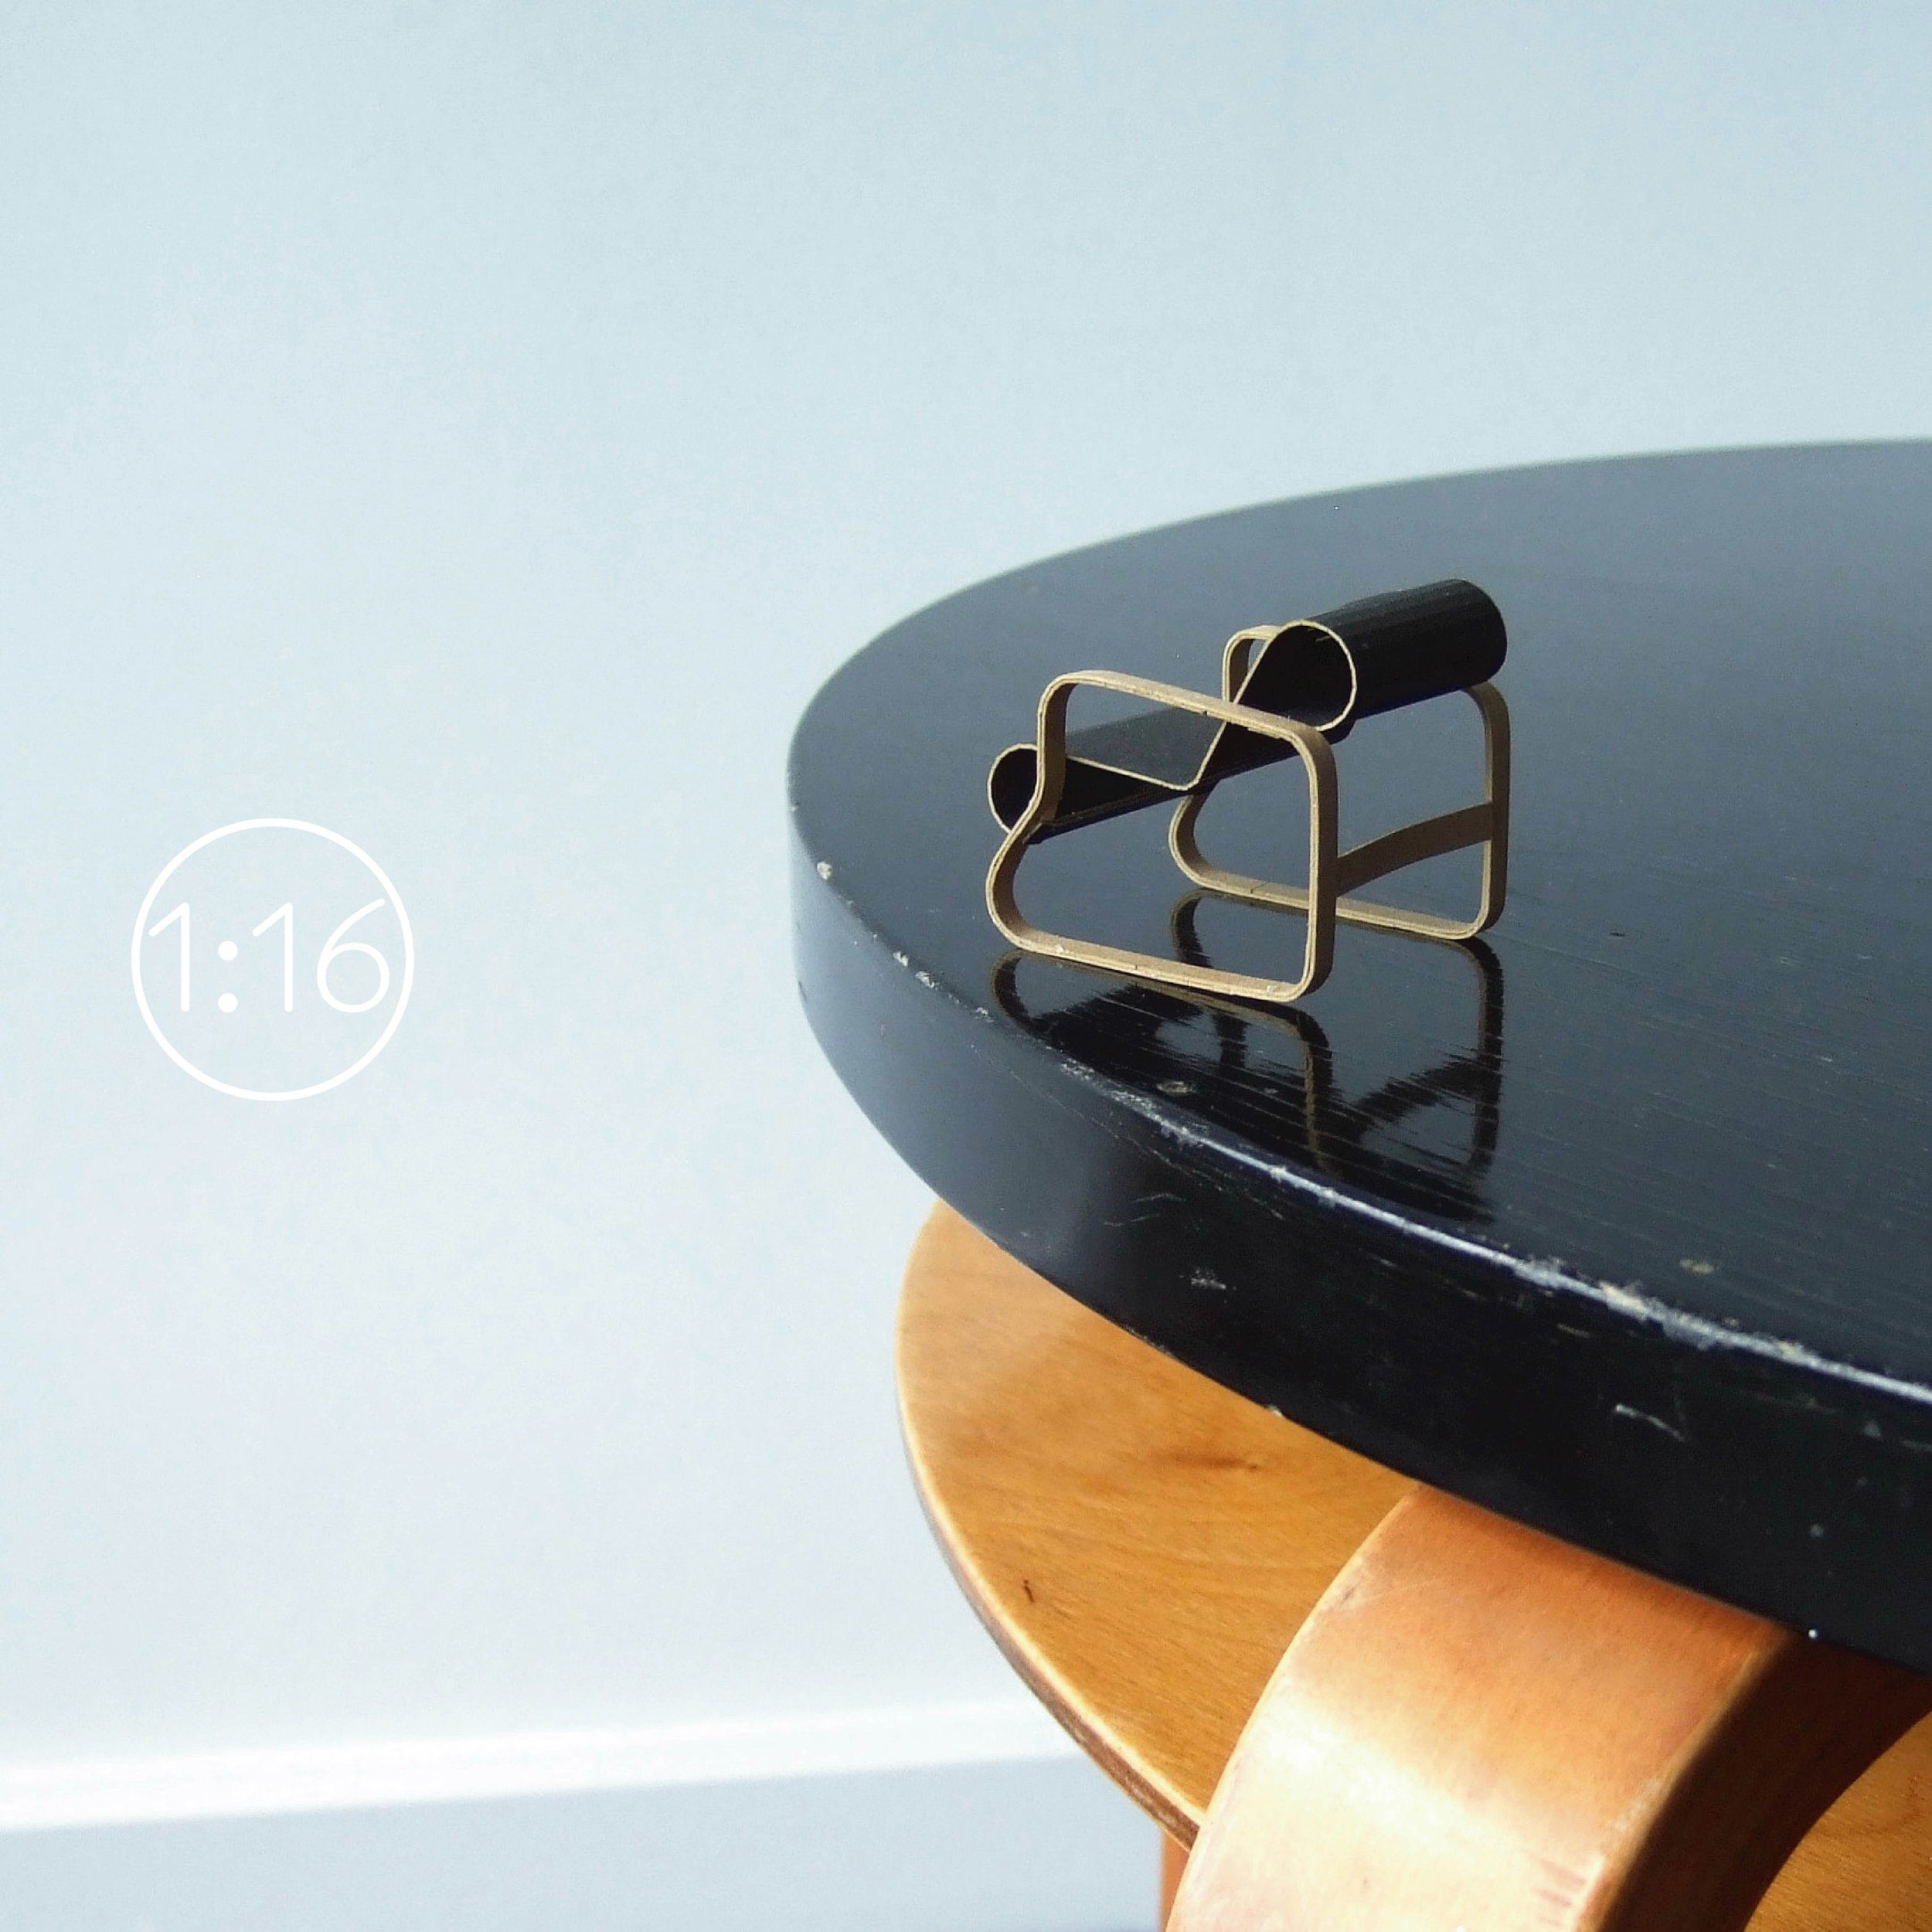 008 Paimio chair (Arnchair 41)  - discover more 1:16 paper model kits in our shop!